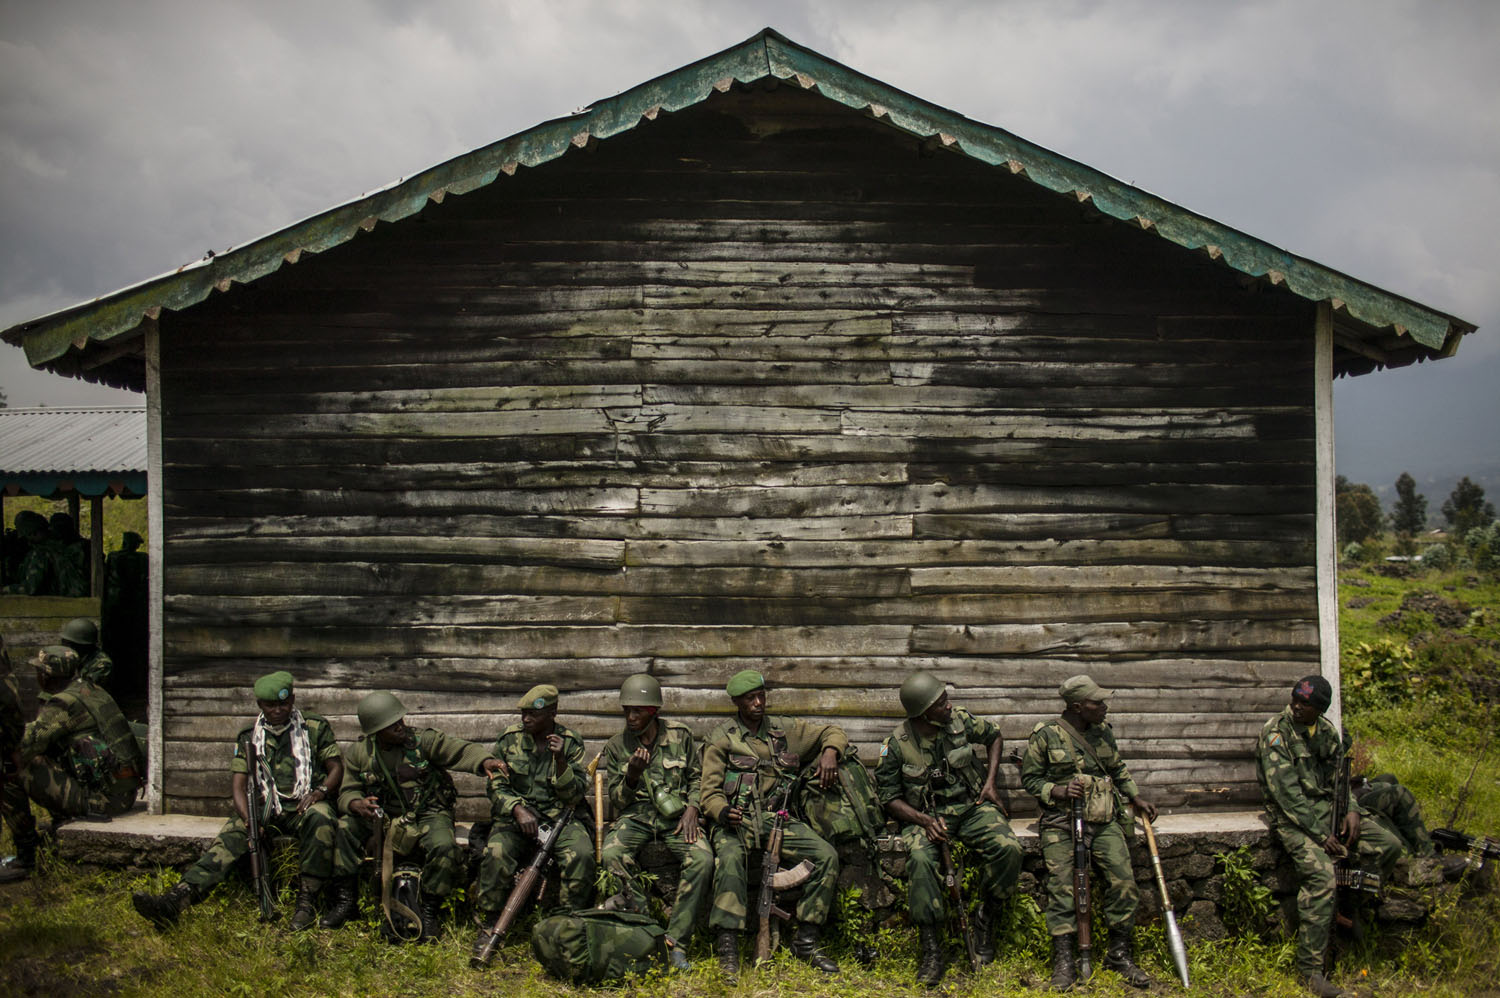 Congolese forces rest before an offensive to dislodge remaining elements of the M23 rebel group in the hills outside Kibumba, north of Goma.